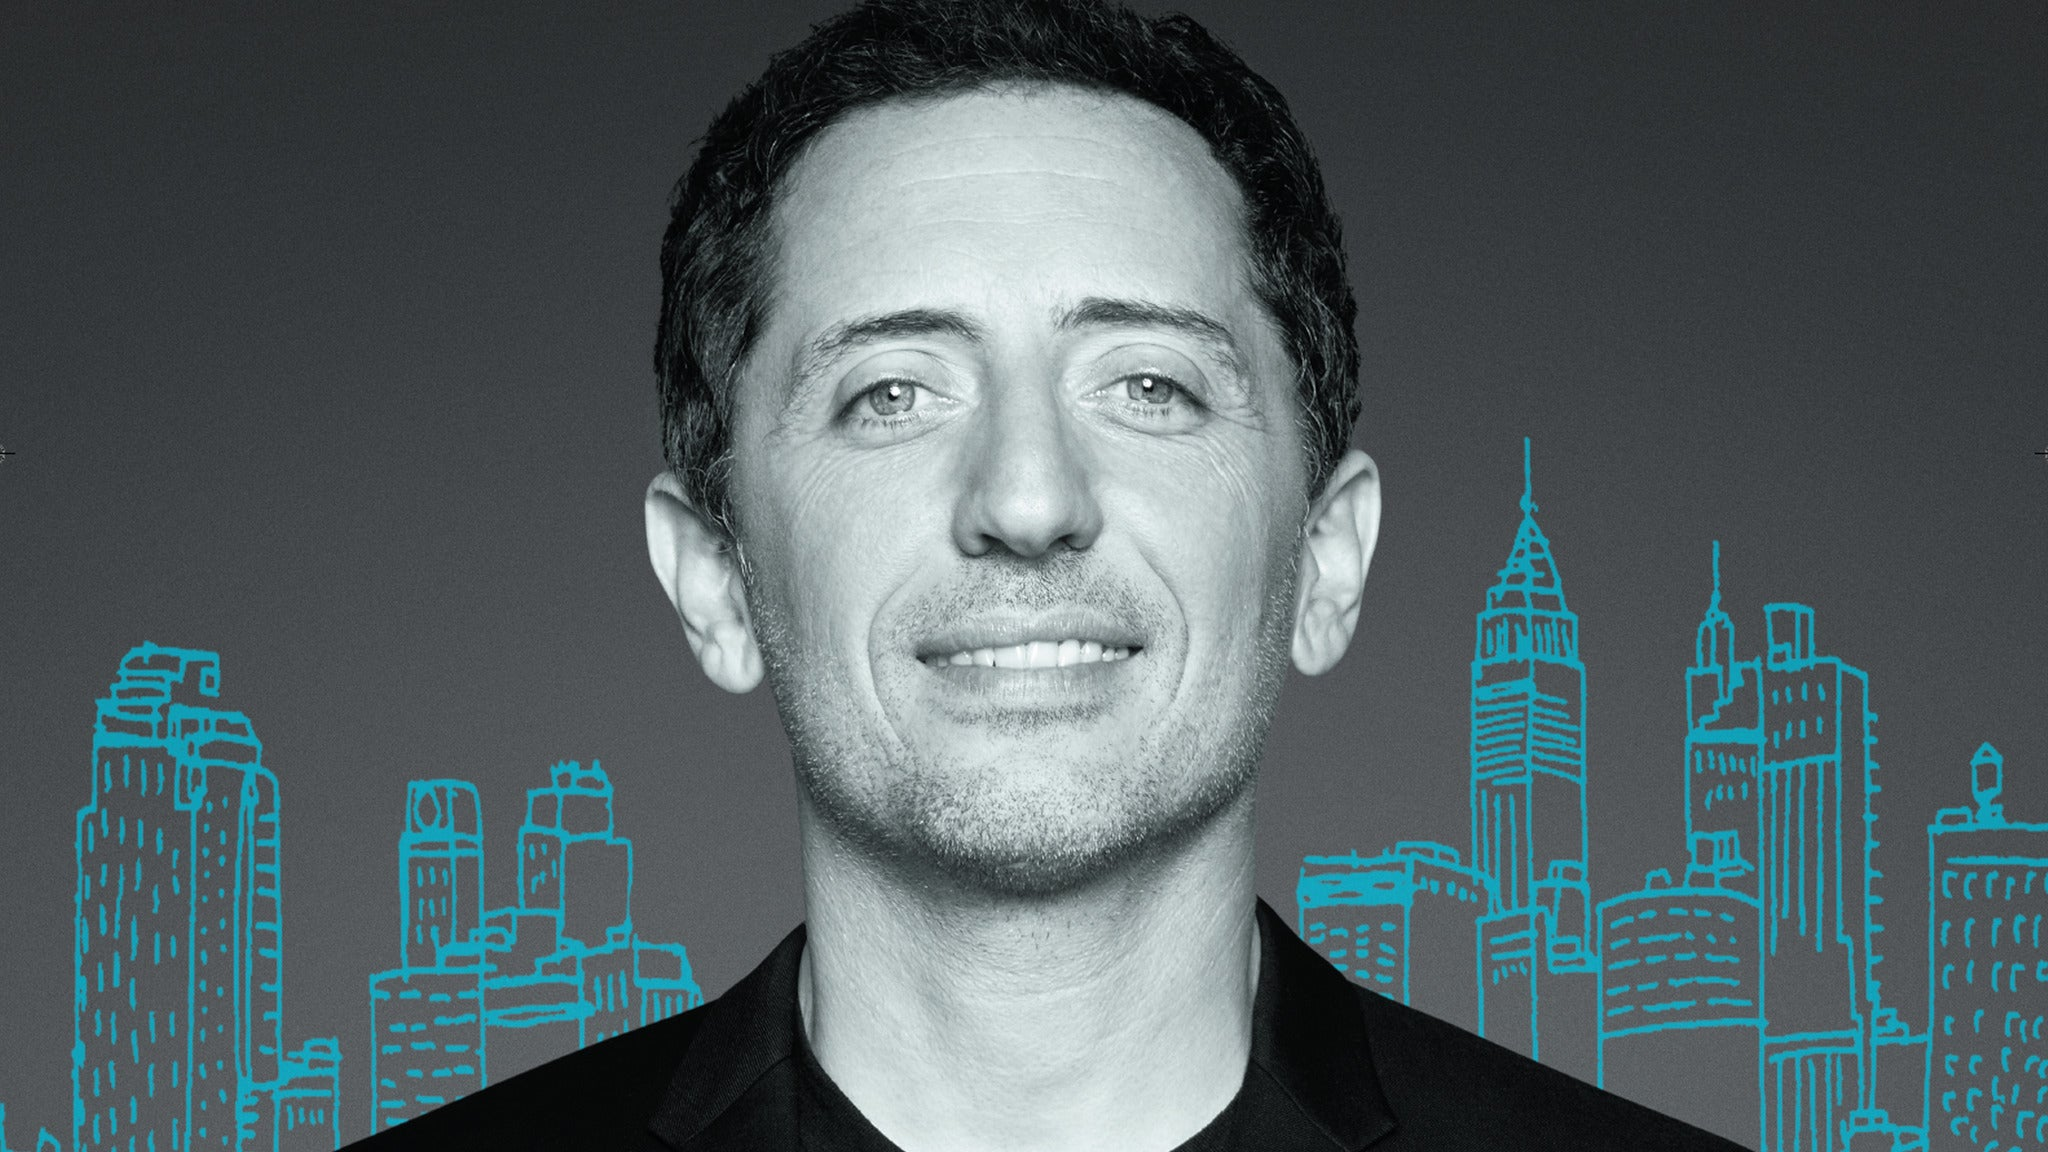 Gad Elmaleh at Chicago Improv